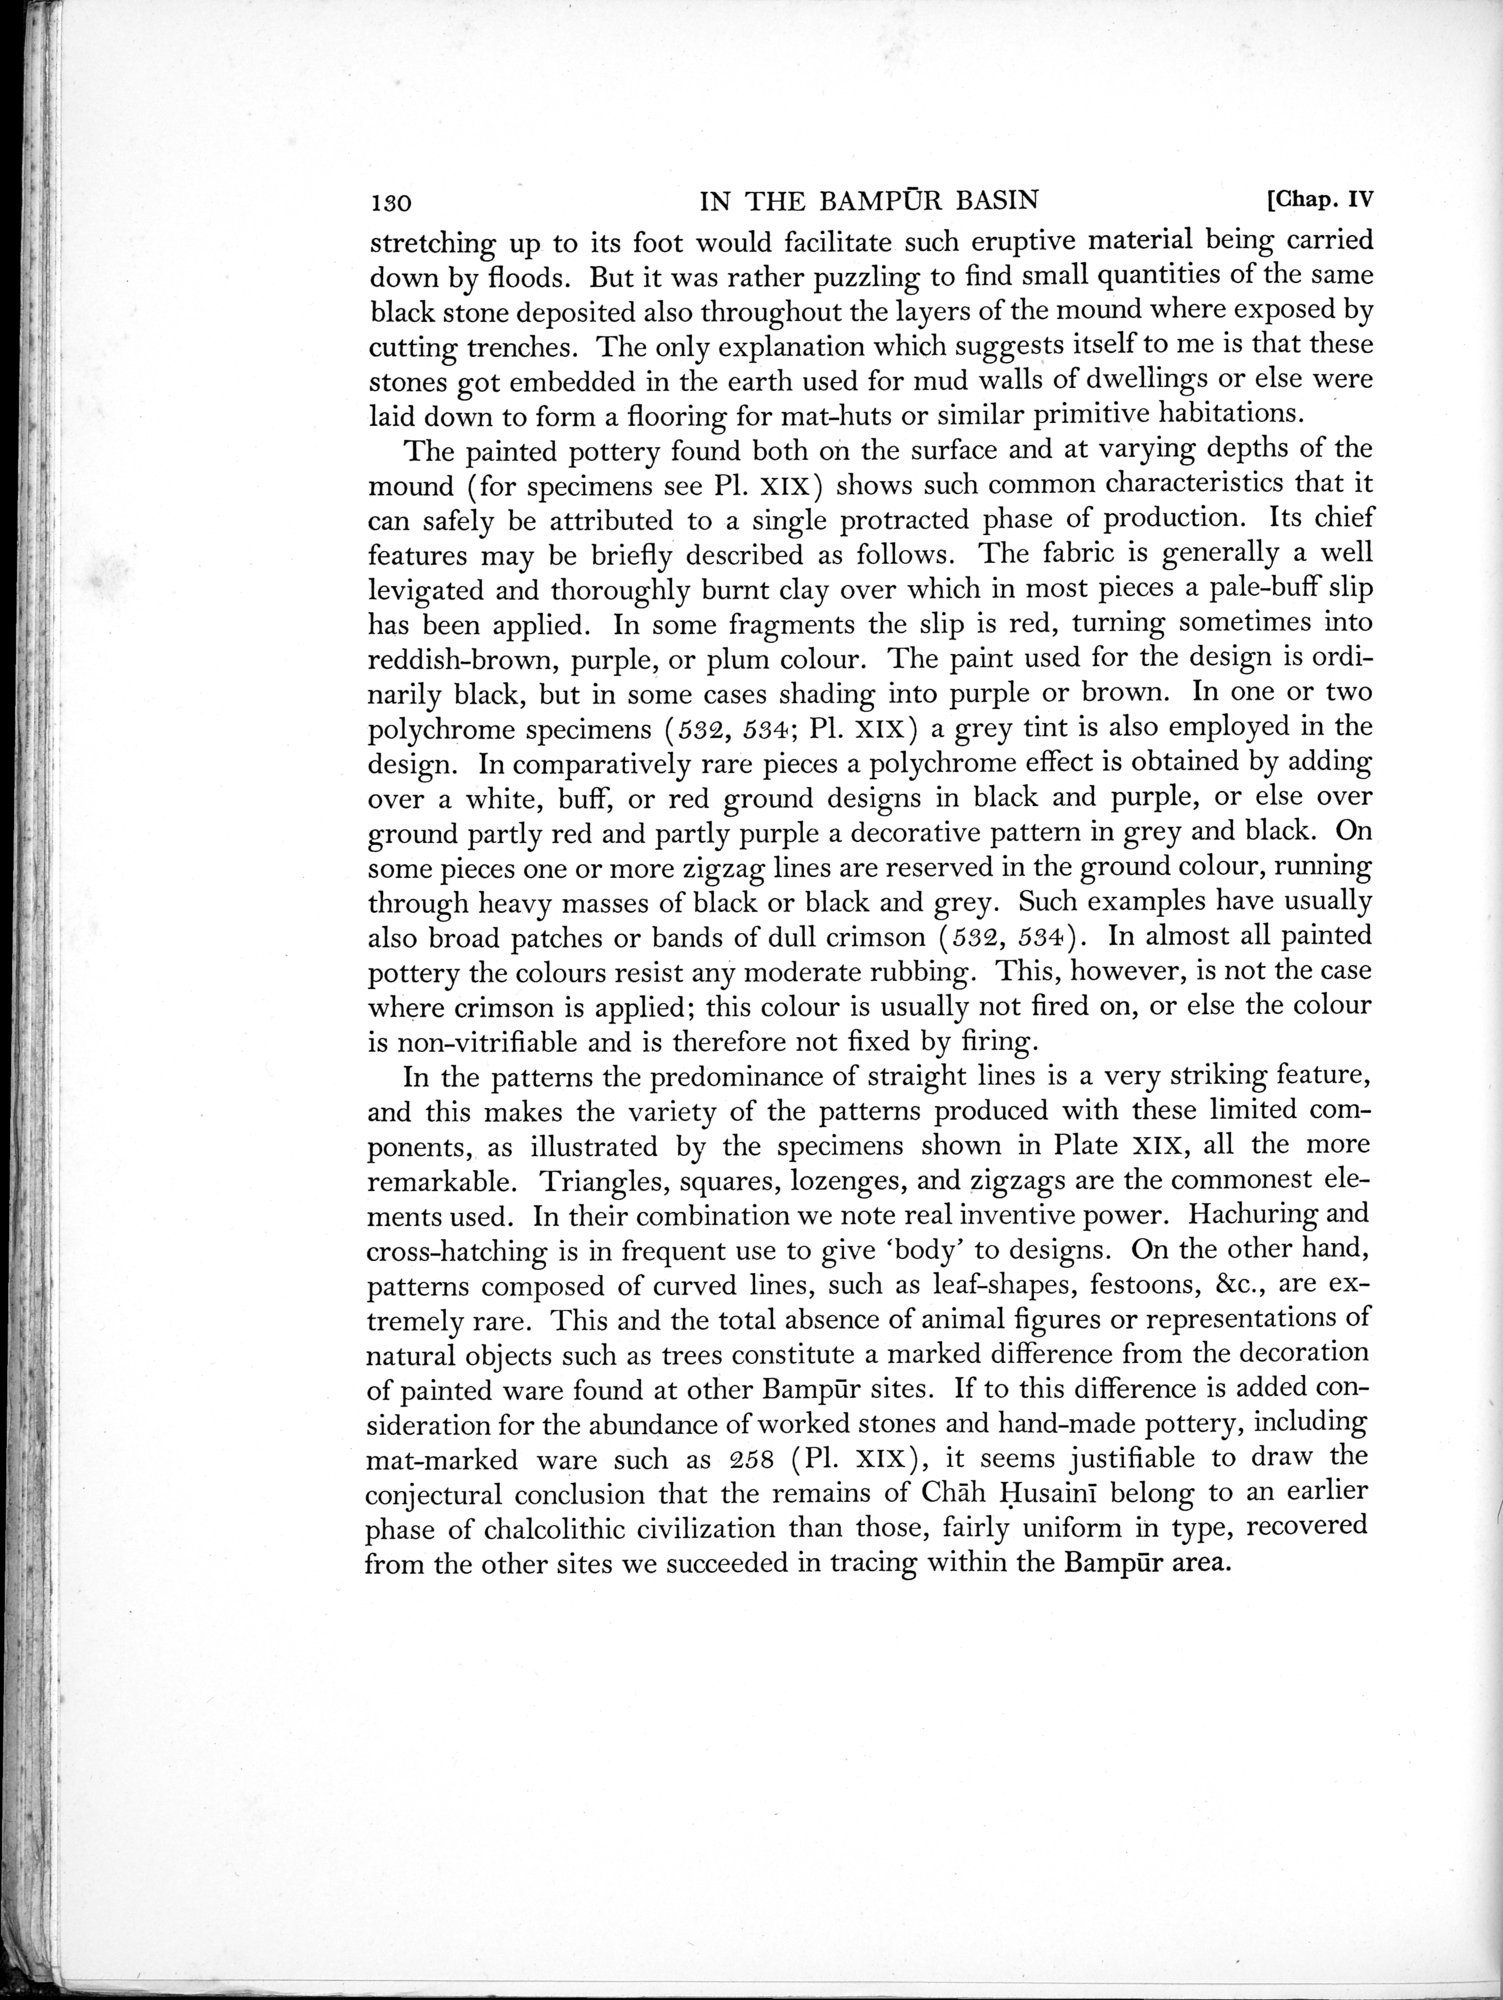 Archaeological Reconnaissances in North-Western India and South-Eastern Īrān : vol.1 / Page 184 (Grayscale High Resolution Image)